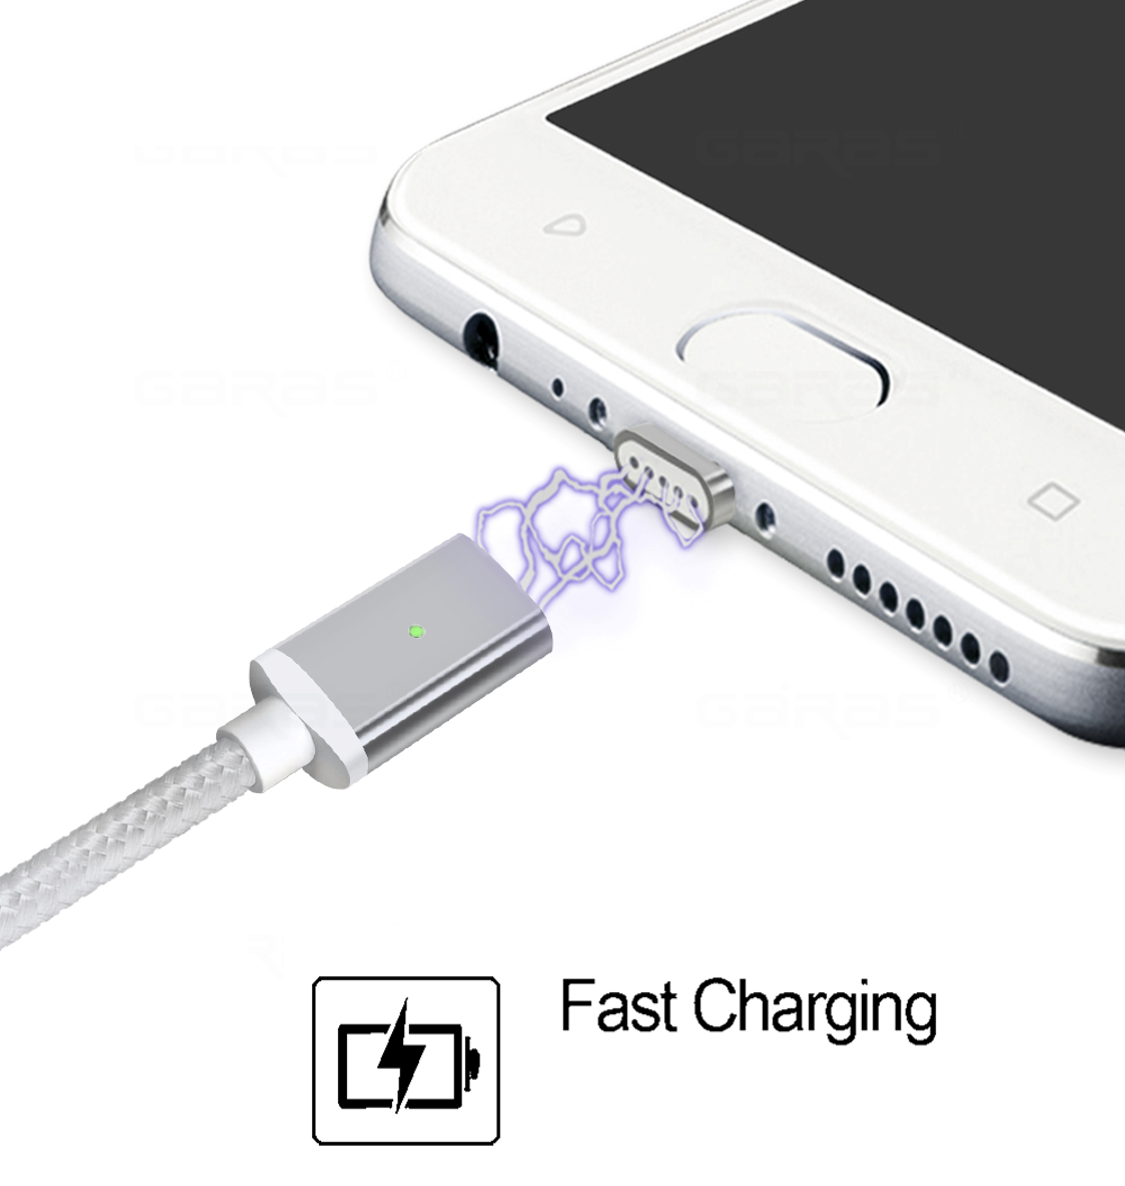 ConnectMe™ Magnetic Cable Lightning Fast Charger - Kangaroo Buddy